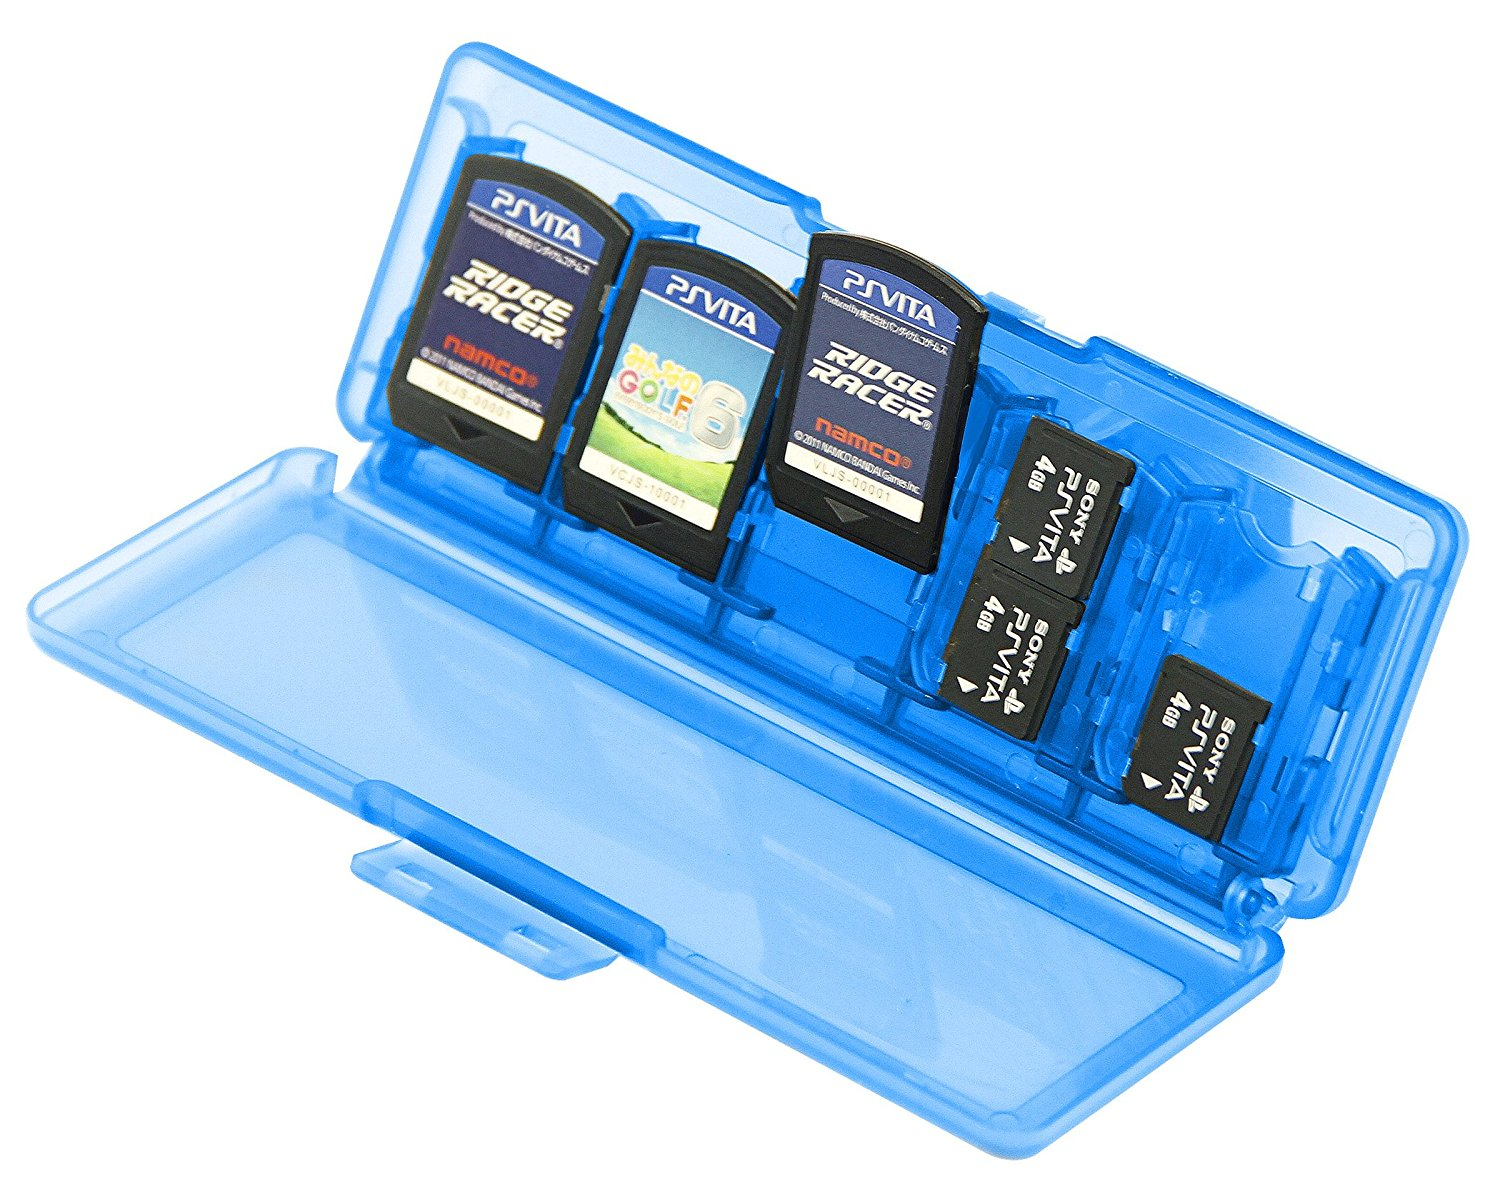 PlayStation Vita Card Case